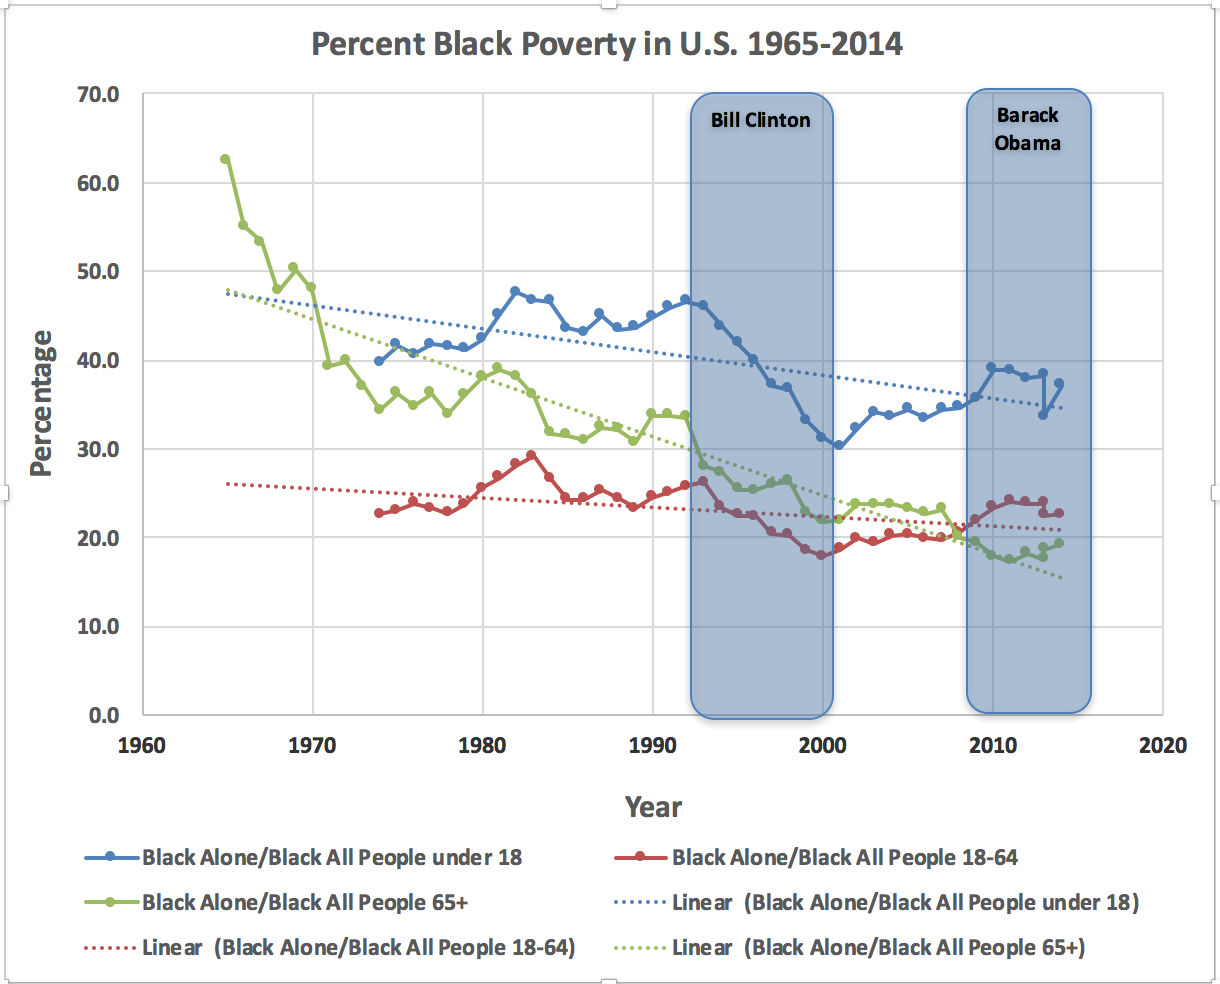 Source for Data: https://www.census.gov/data/tables/time-series/demo/income-poverty/historical-poverty-people.html (See Table 3: Poverty Status of People, by Age, Race, and Hispanic Origin